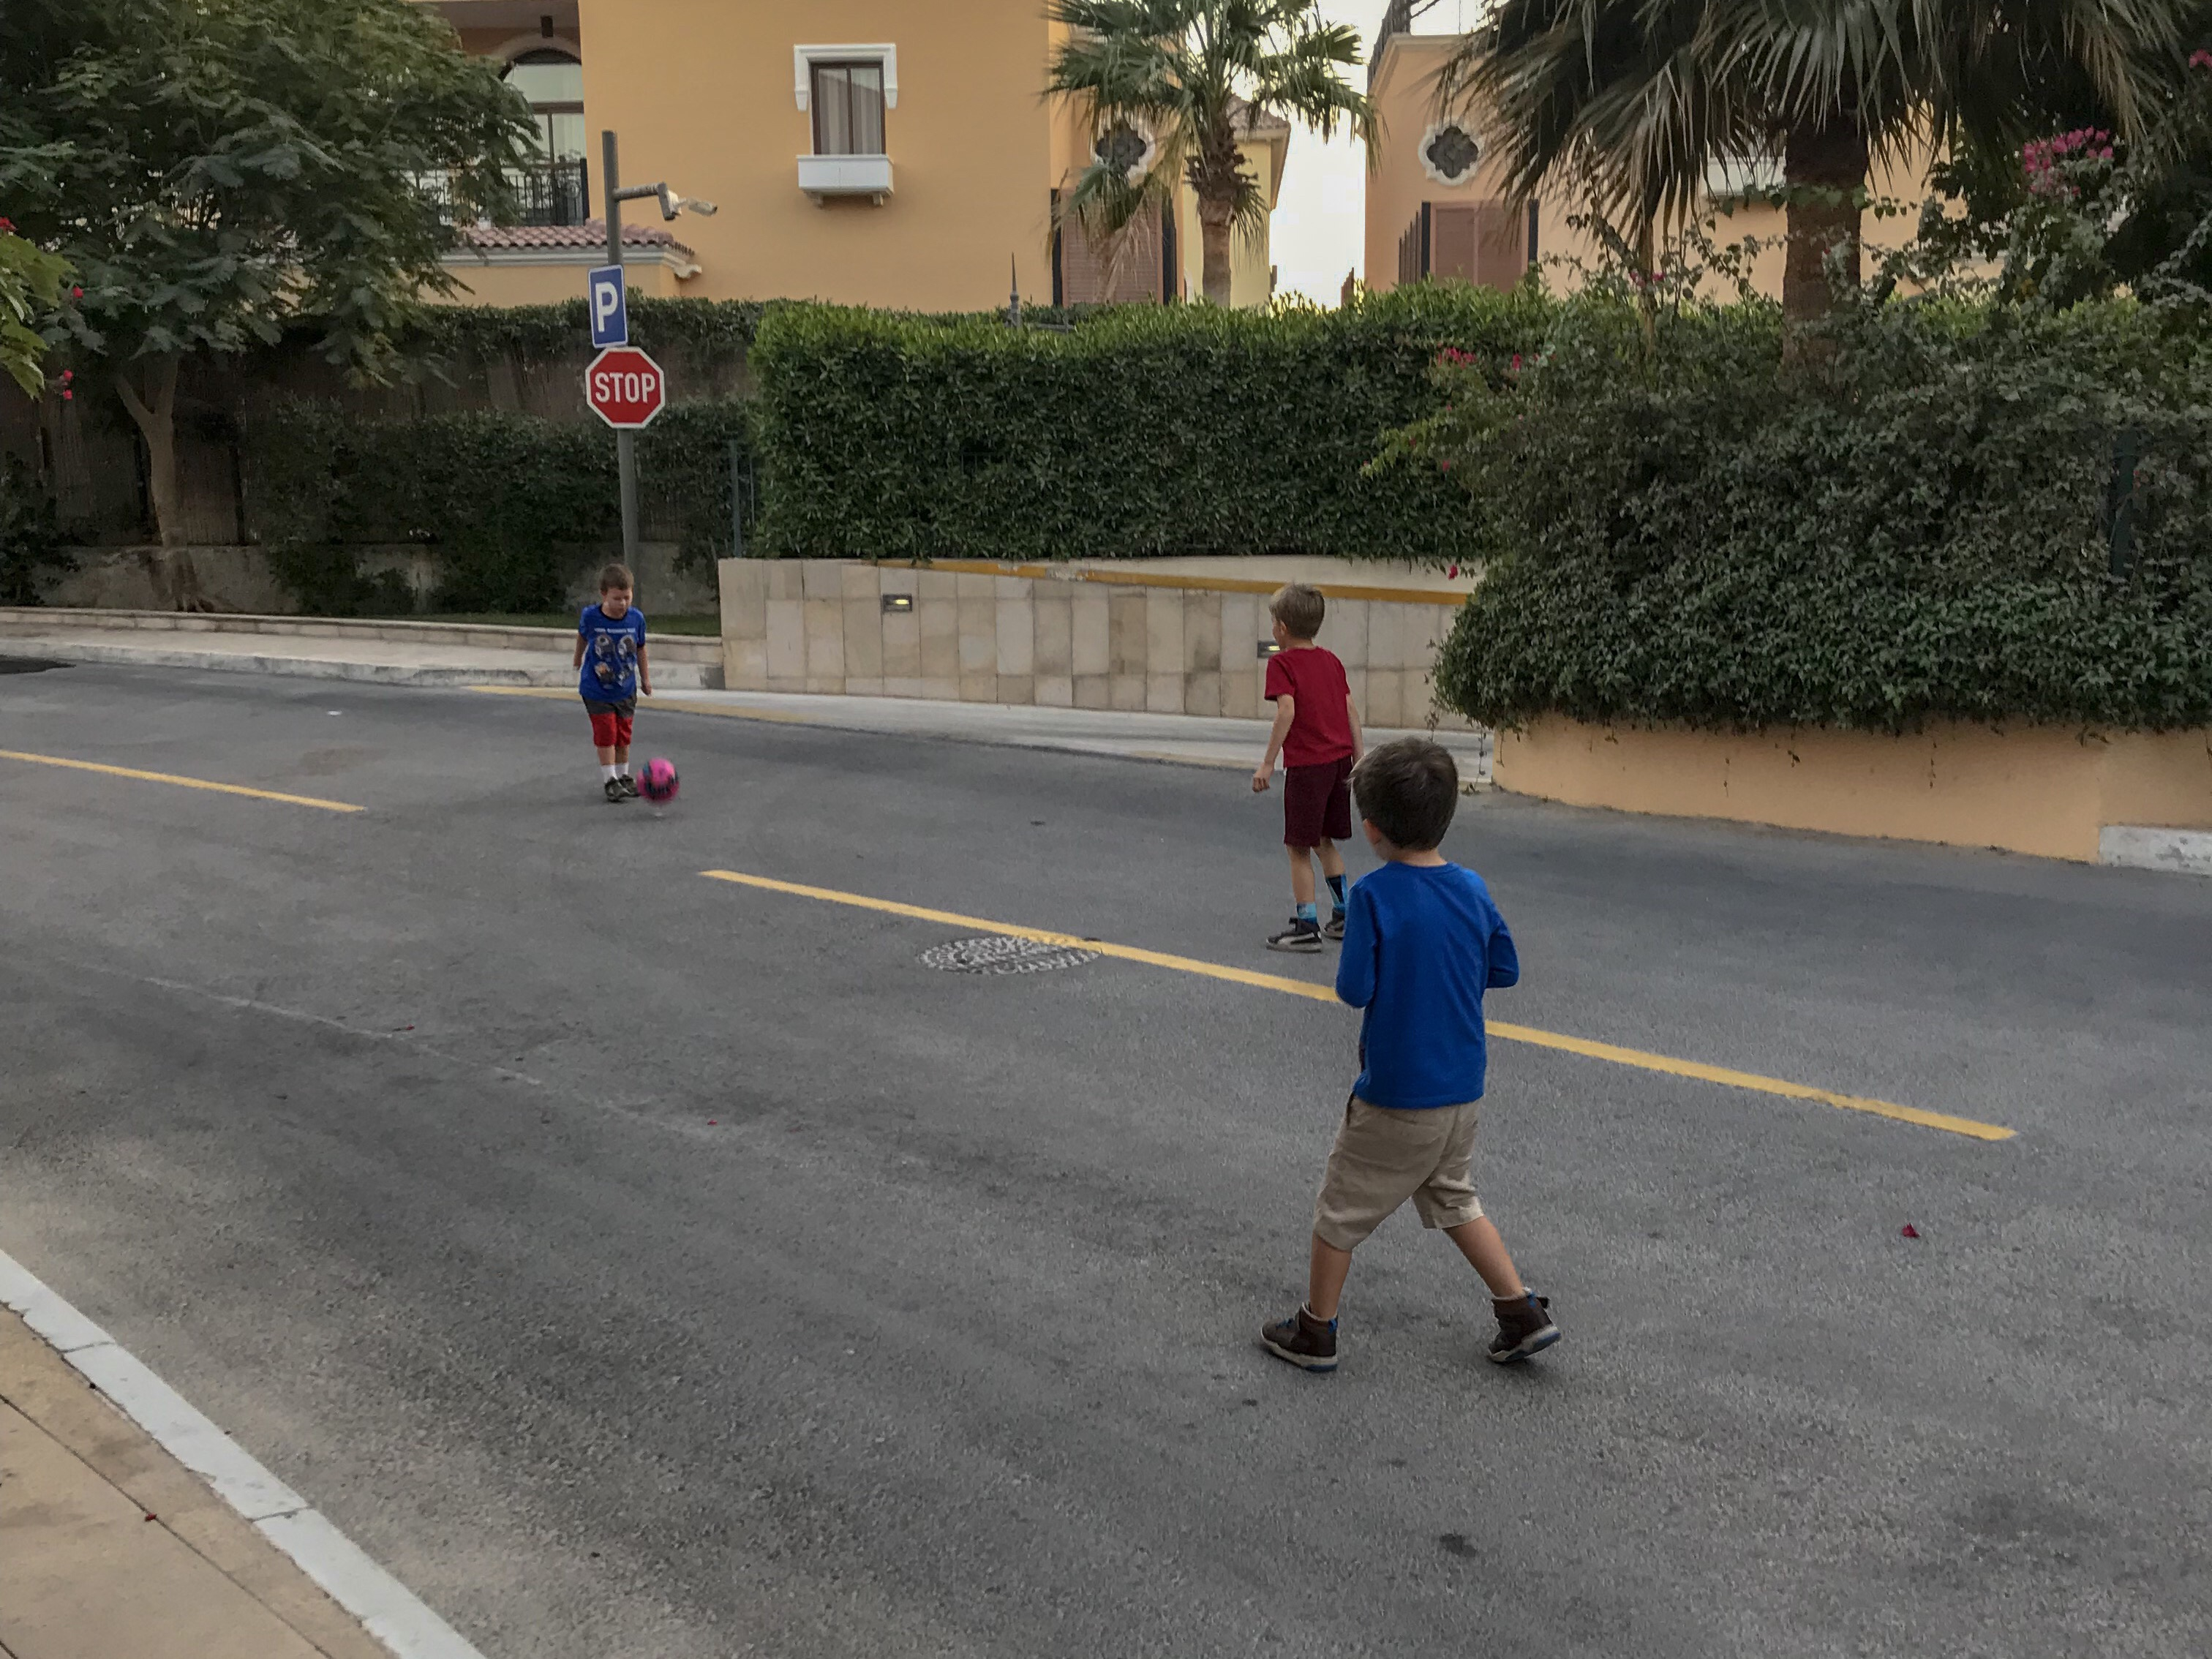 An open letter to new expat woman - kids playing in the street